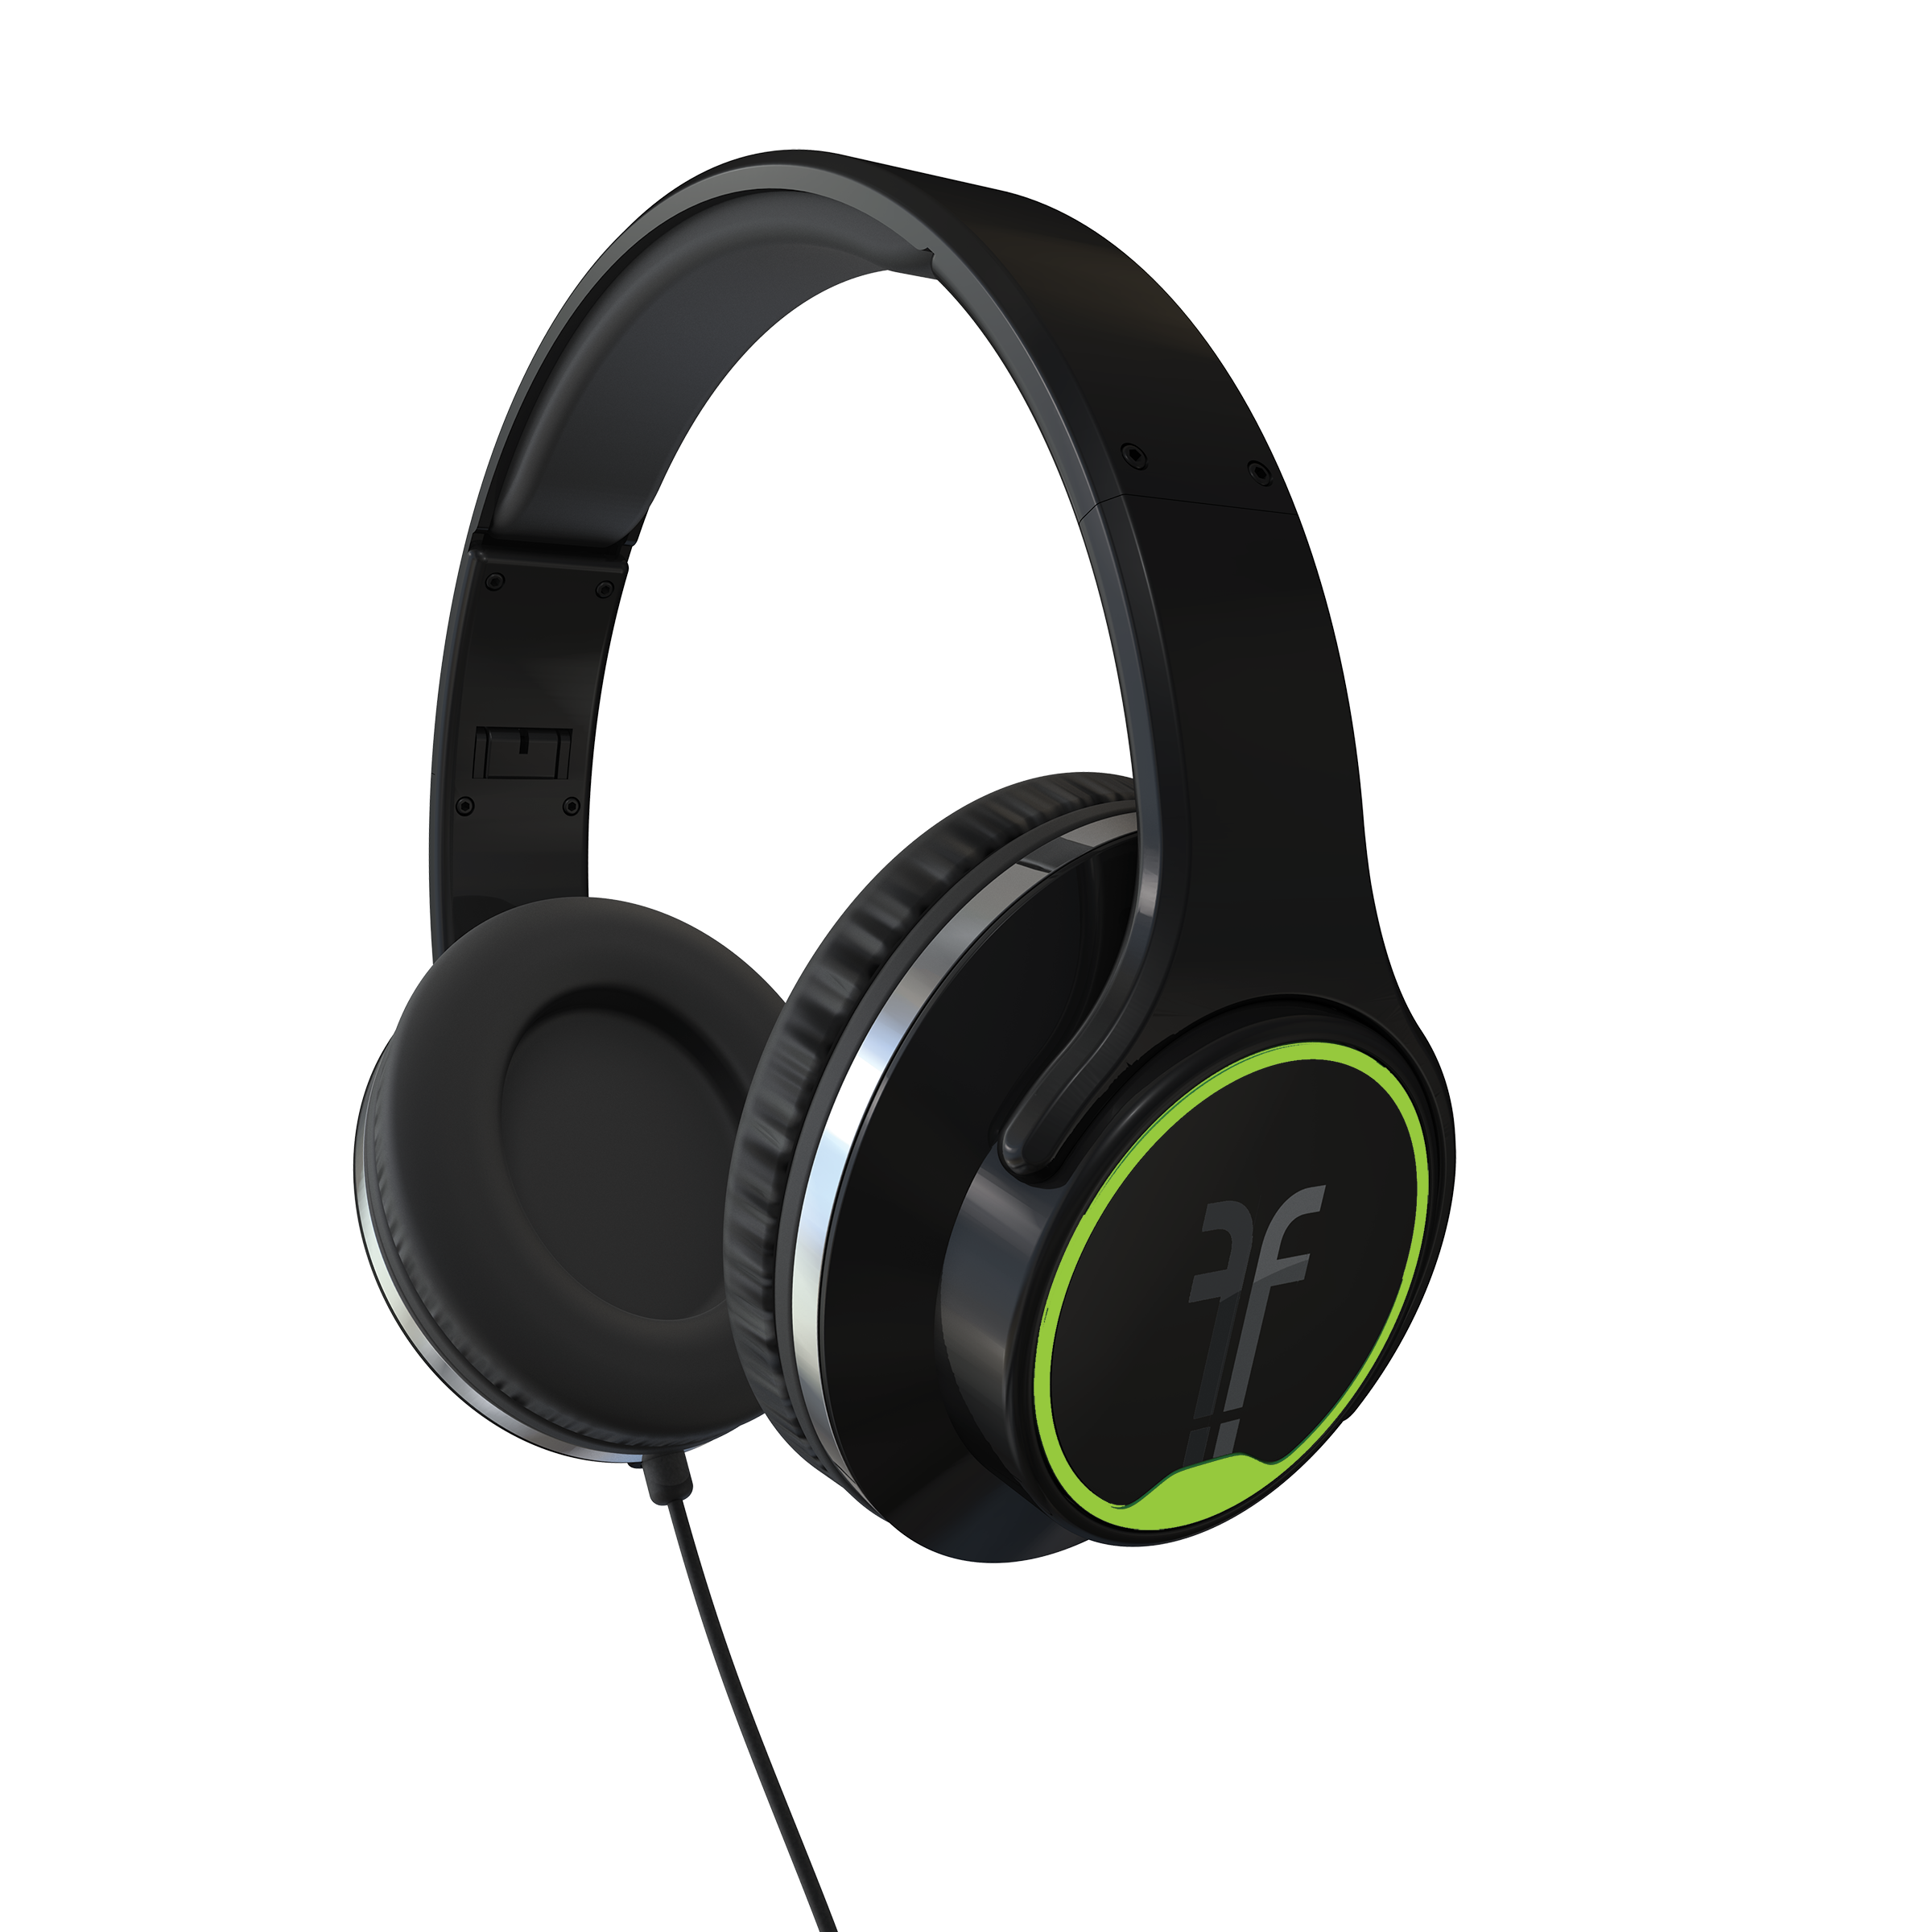 Green clipart headphone. Headphones png images free